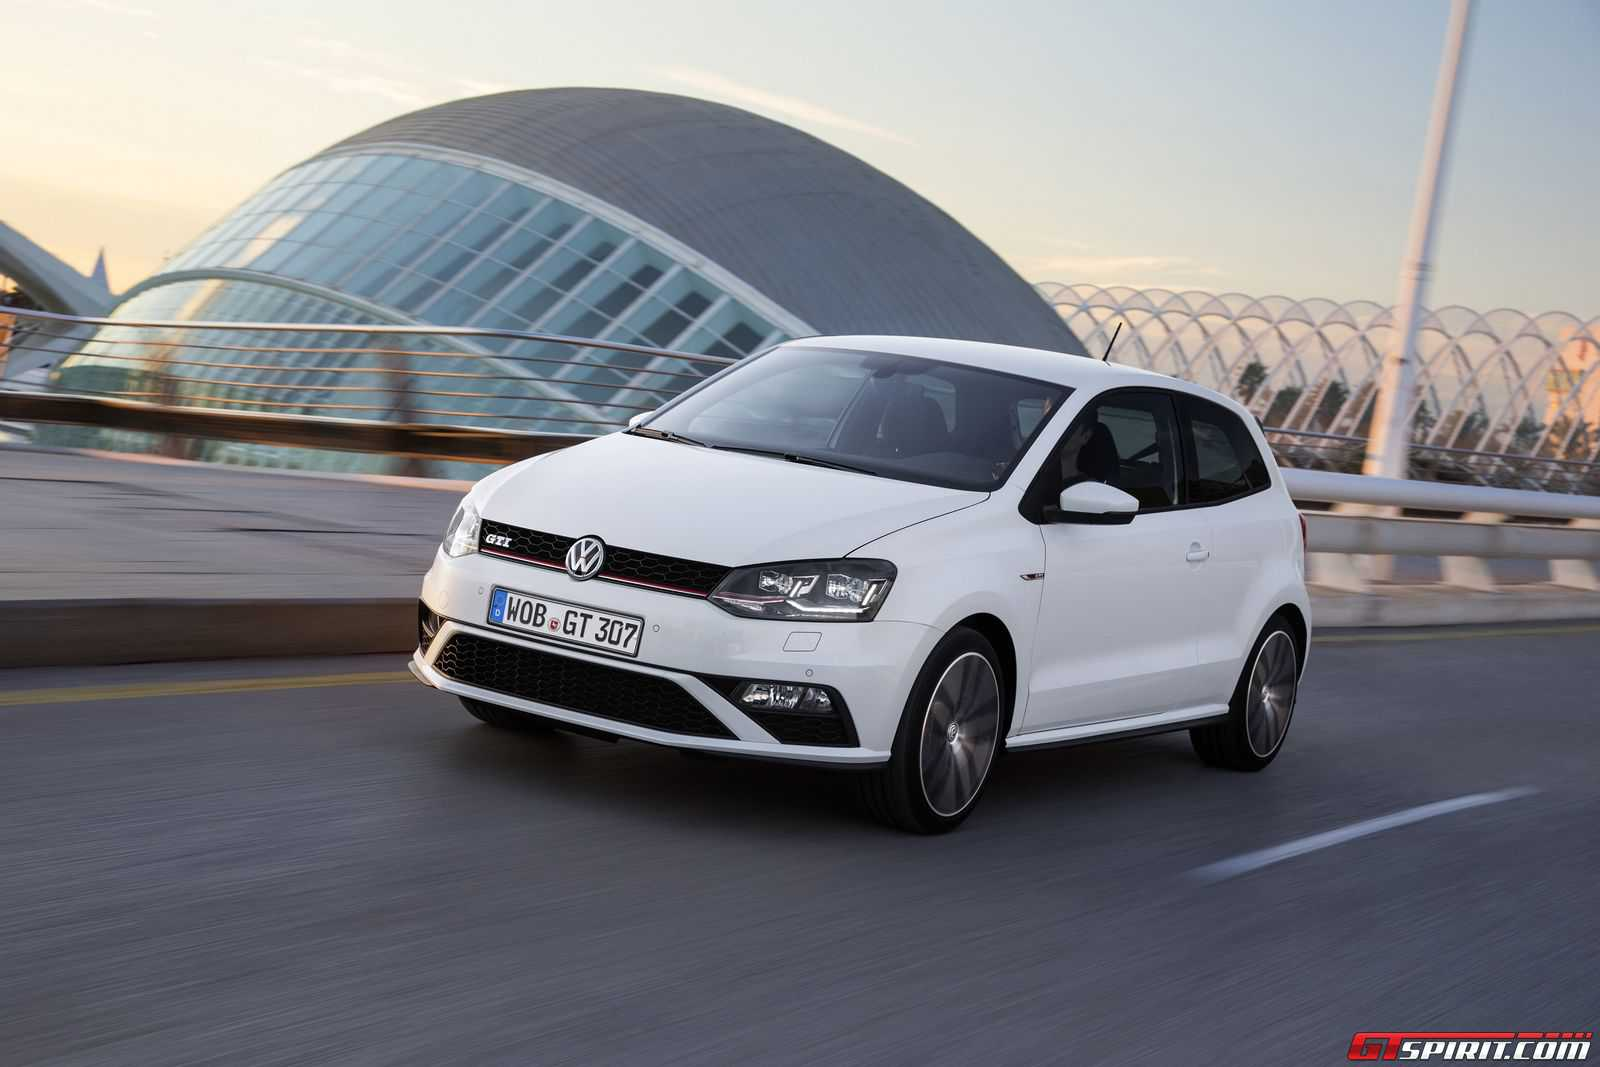 Volkswagen Polo Gti Review By Vw 14